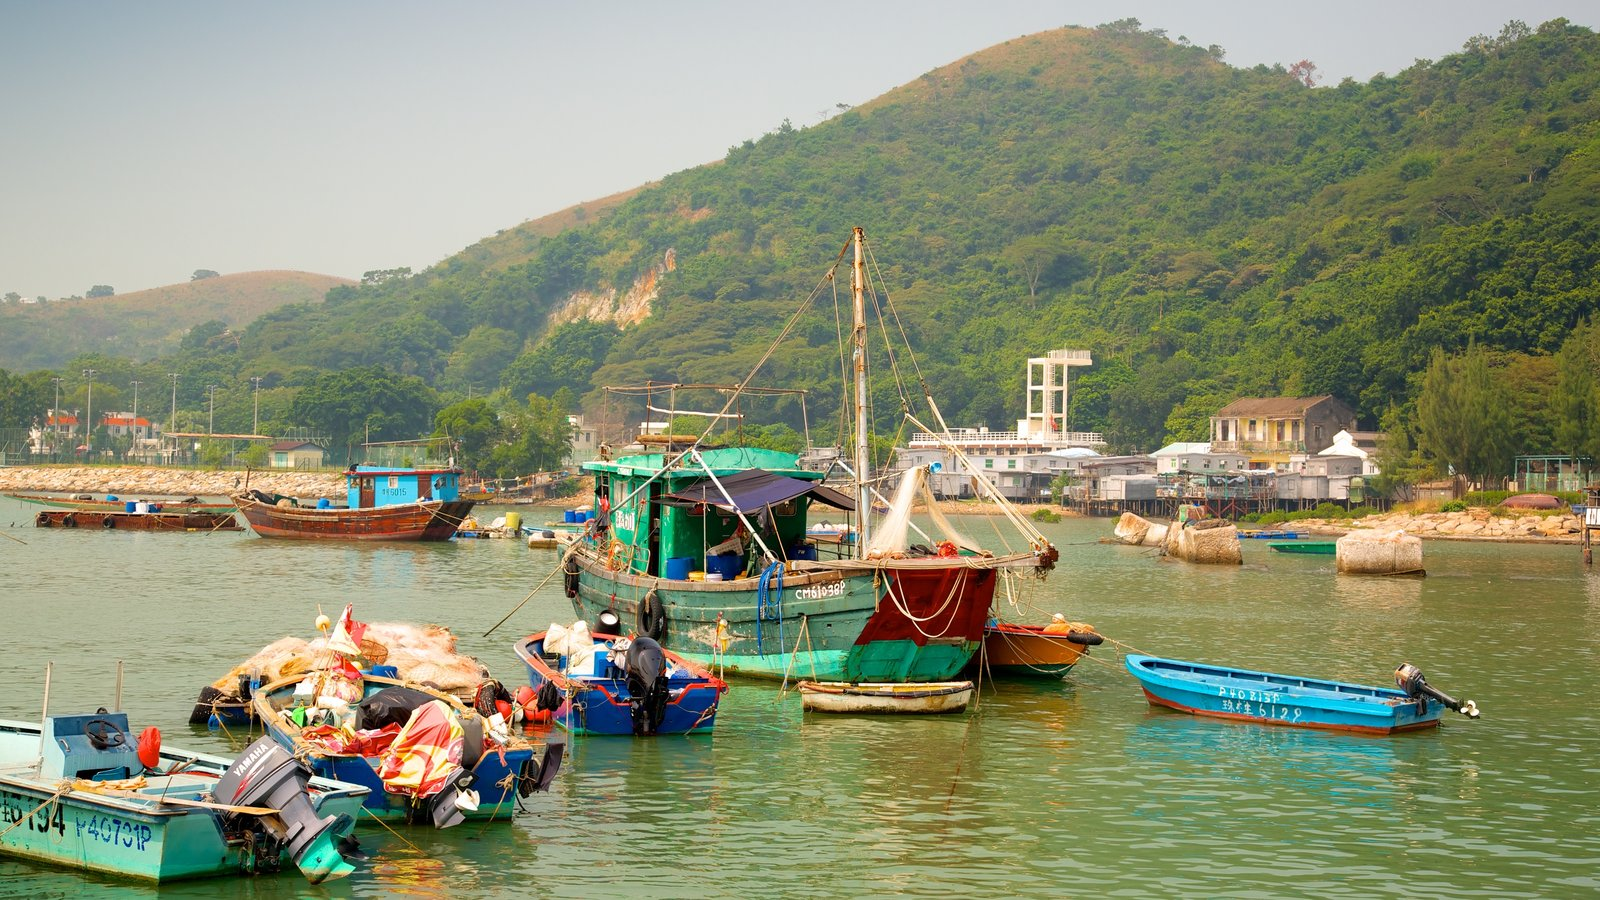 Tai O Fishing Village which includes a bay or harbor, mountains and boating